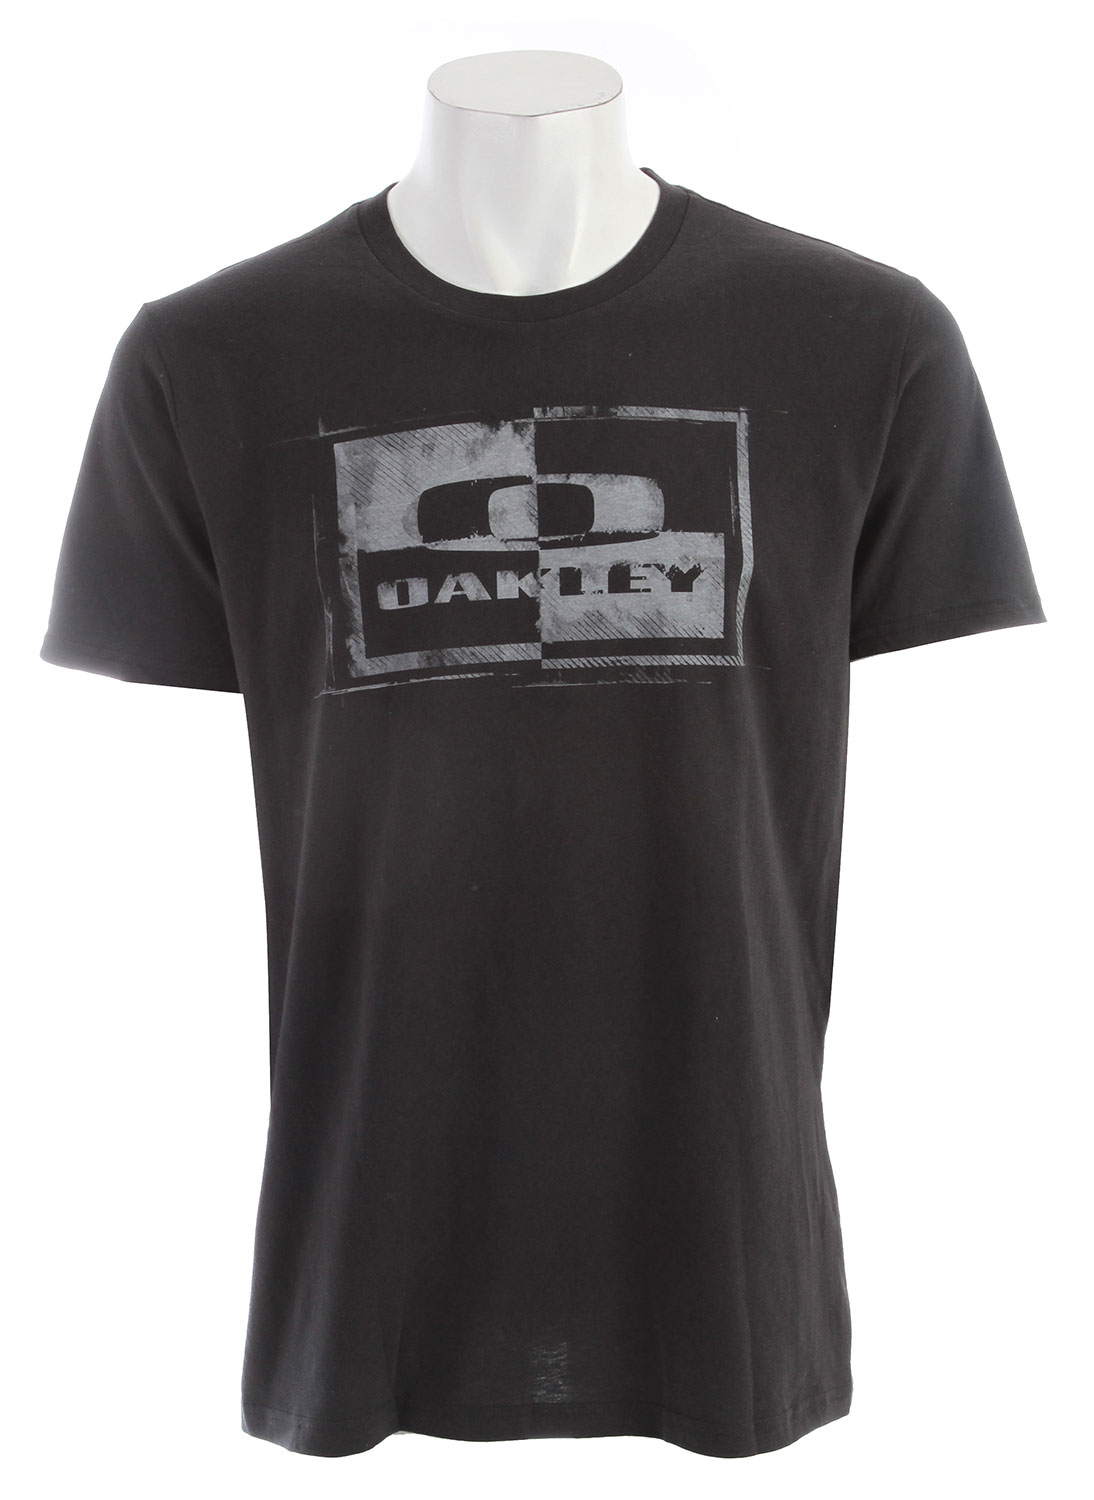 The famous Oakley logo gets updated in modern contrast on the Block It Tee, made with pure cotton for keeping surfers comfortable when shredding is done for the day.Key Features of the Oakley Block It T-Shirt: Tee with front screen print 100% Cotton Fit: Regular - $13.95